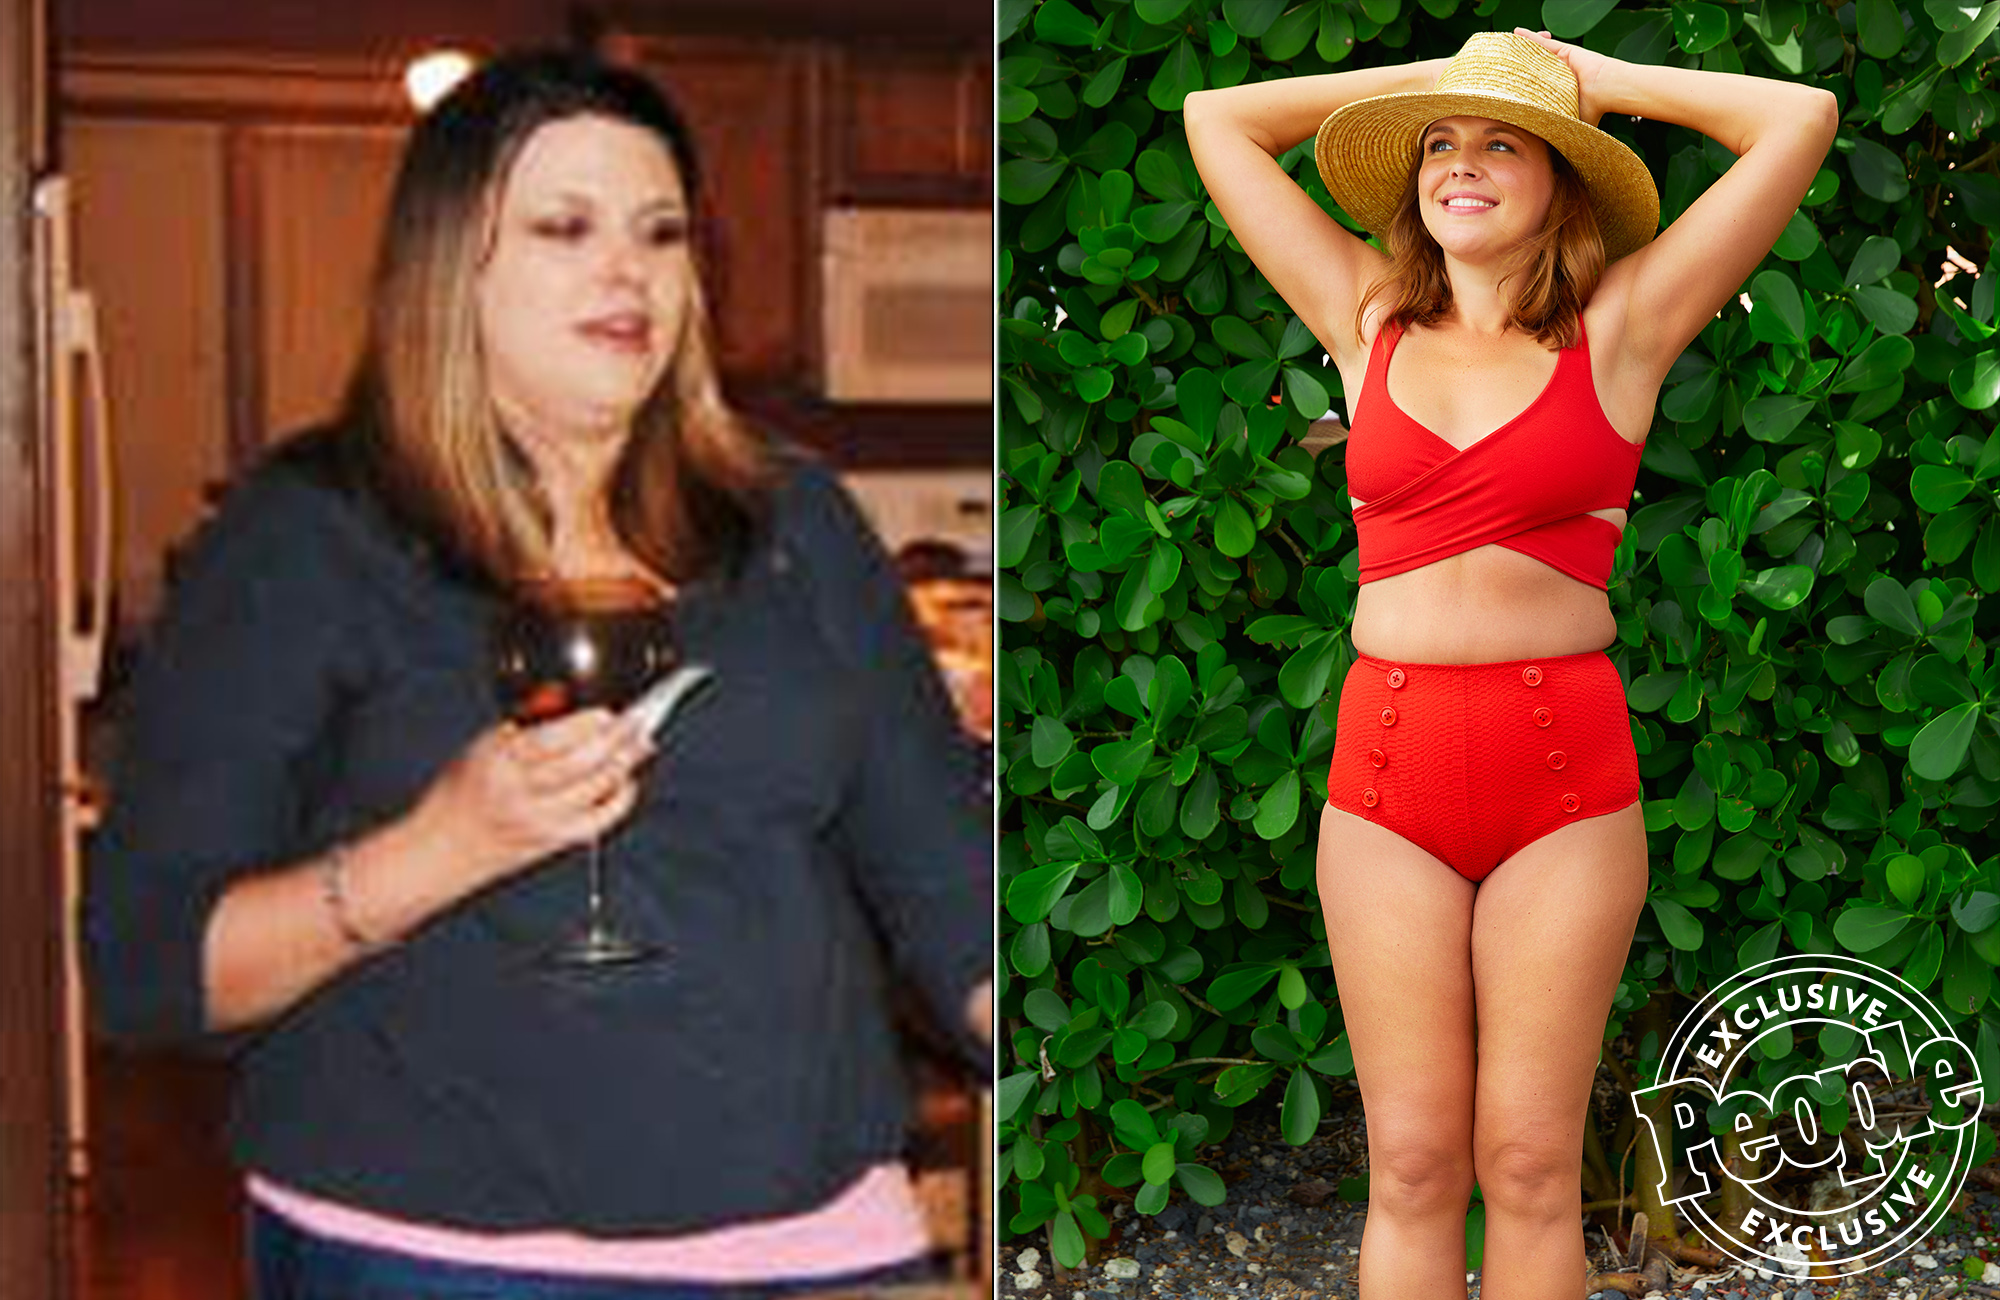 How This Mom Lost 105 Lbs. with Intermittent Fasting: 'I Went Into it Kind of Skeptical'